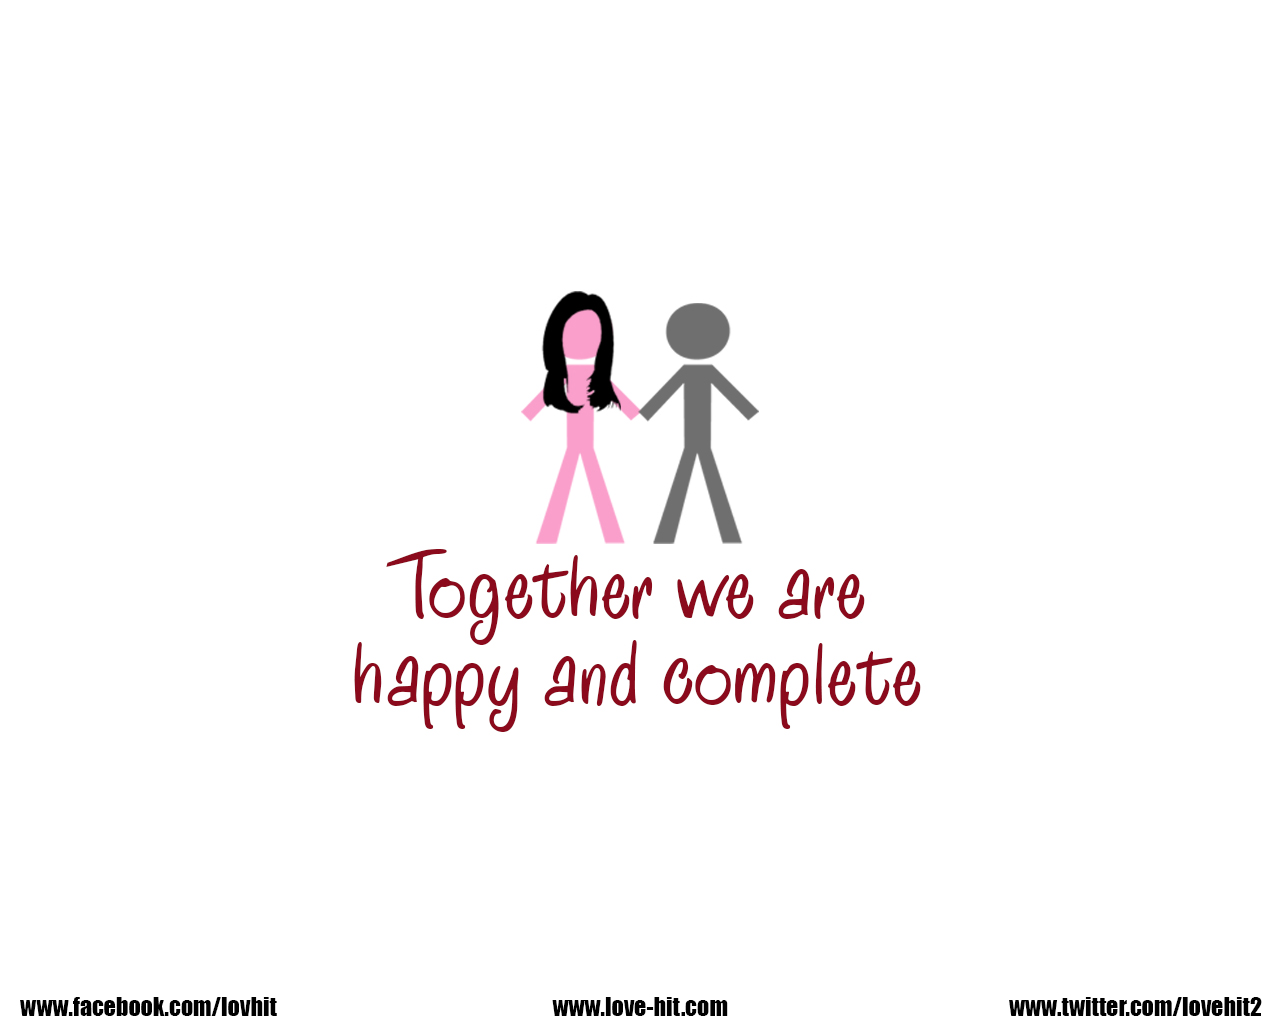 Together we are happy and complete